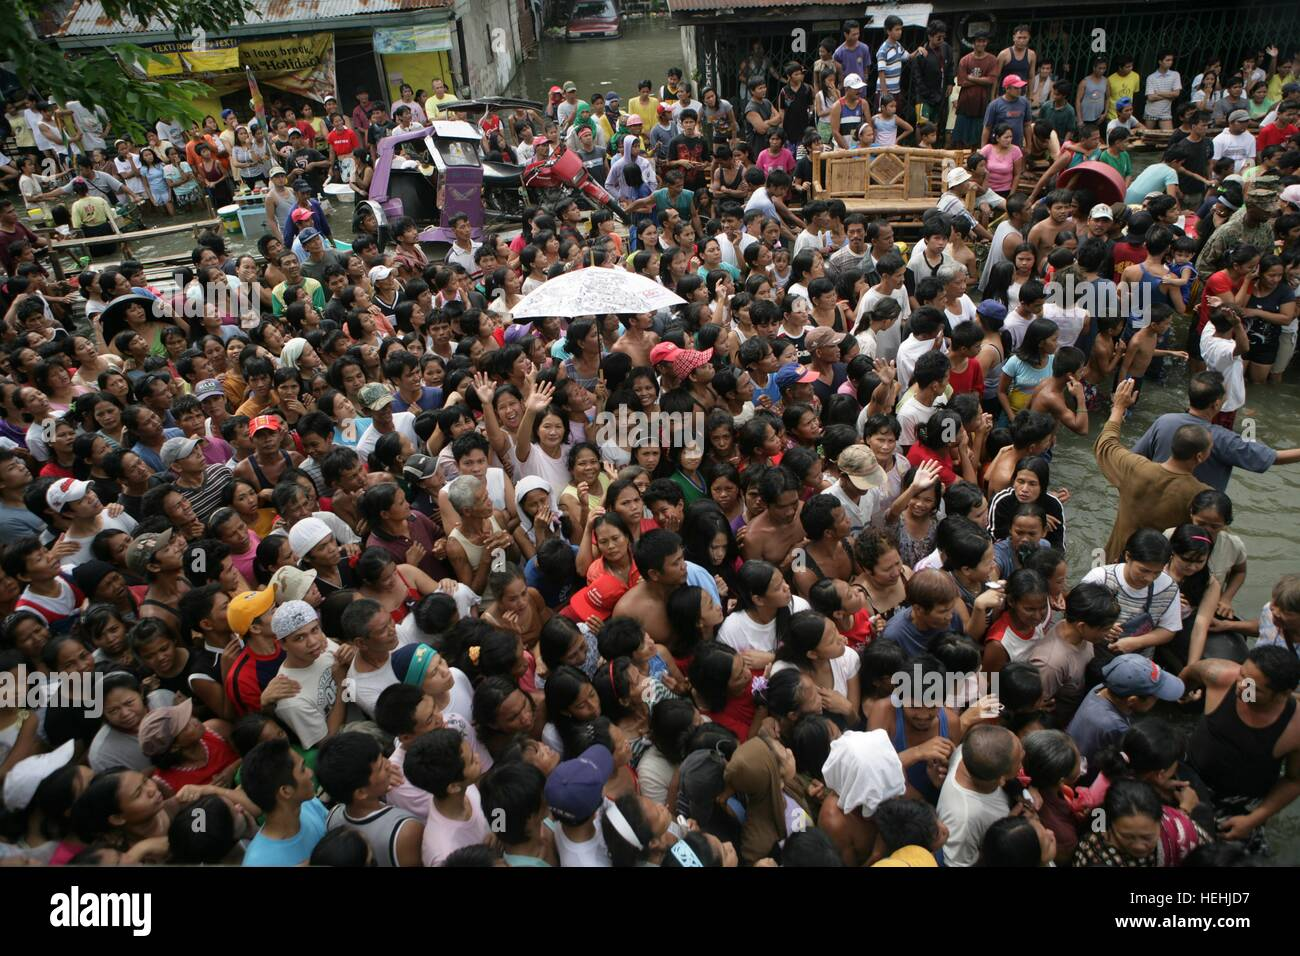 Local Filipino citizens wait in line to receive disaster relief supplies donated by the ABS-CBN Television Network - Stock Image